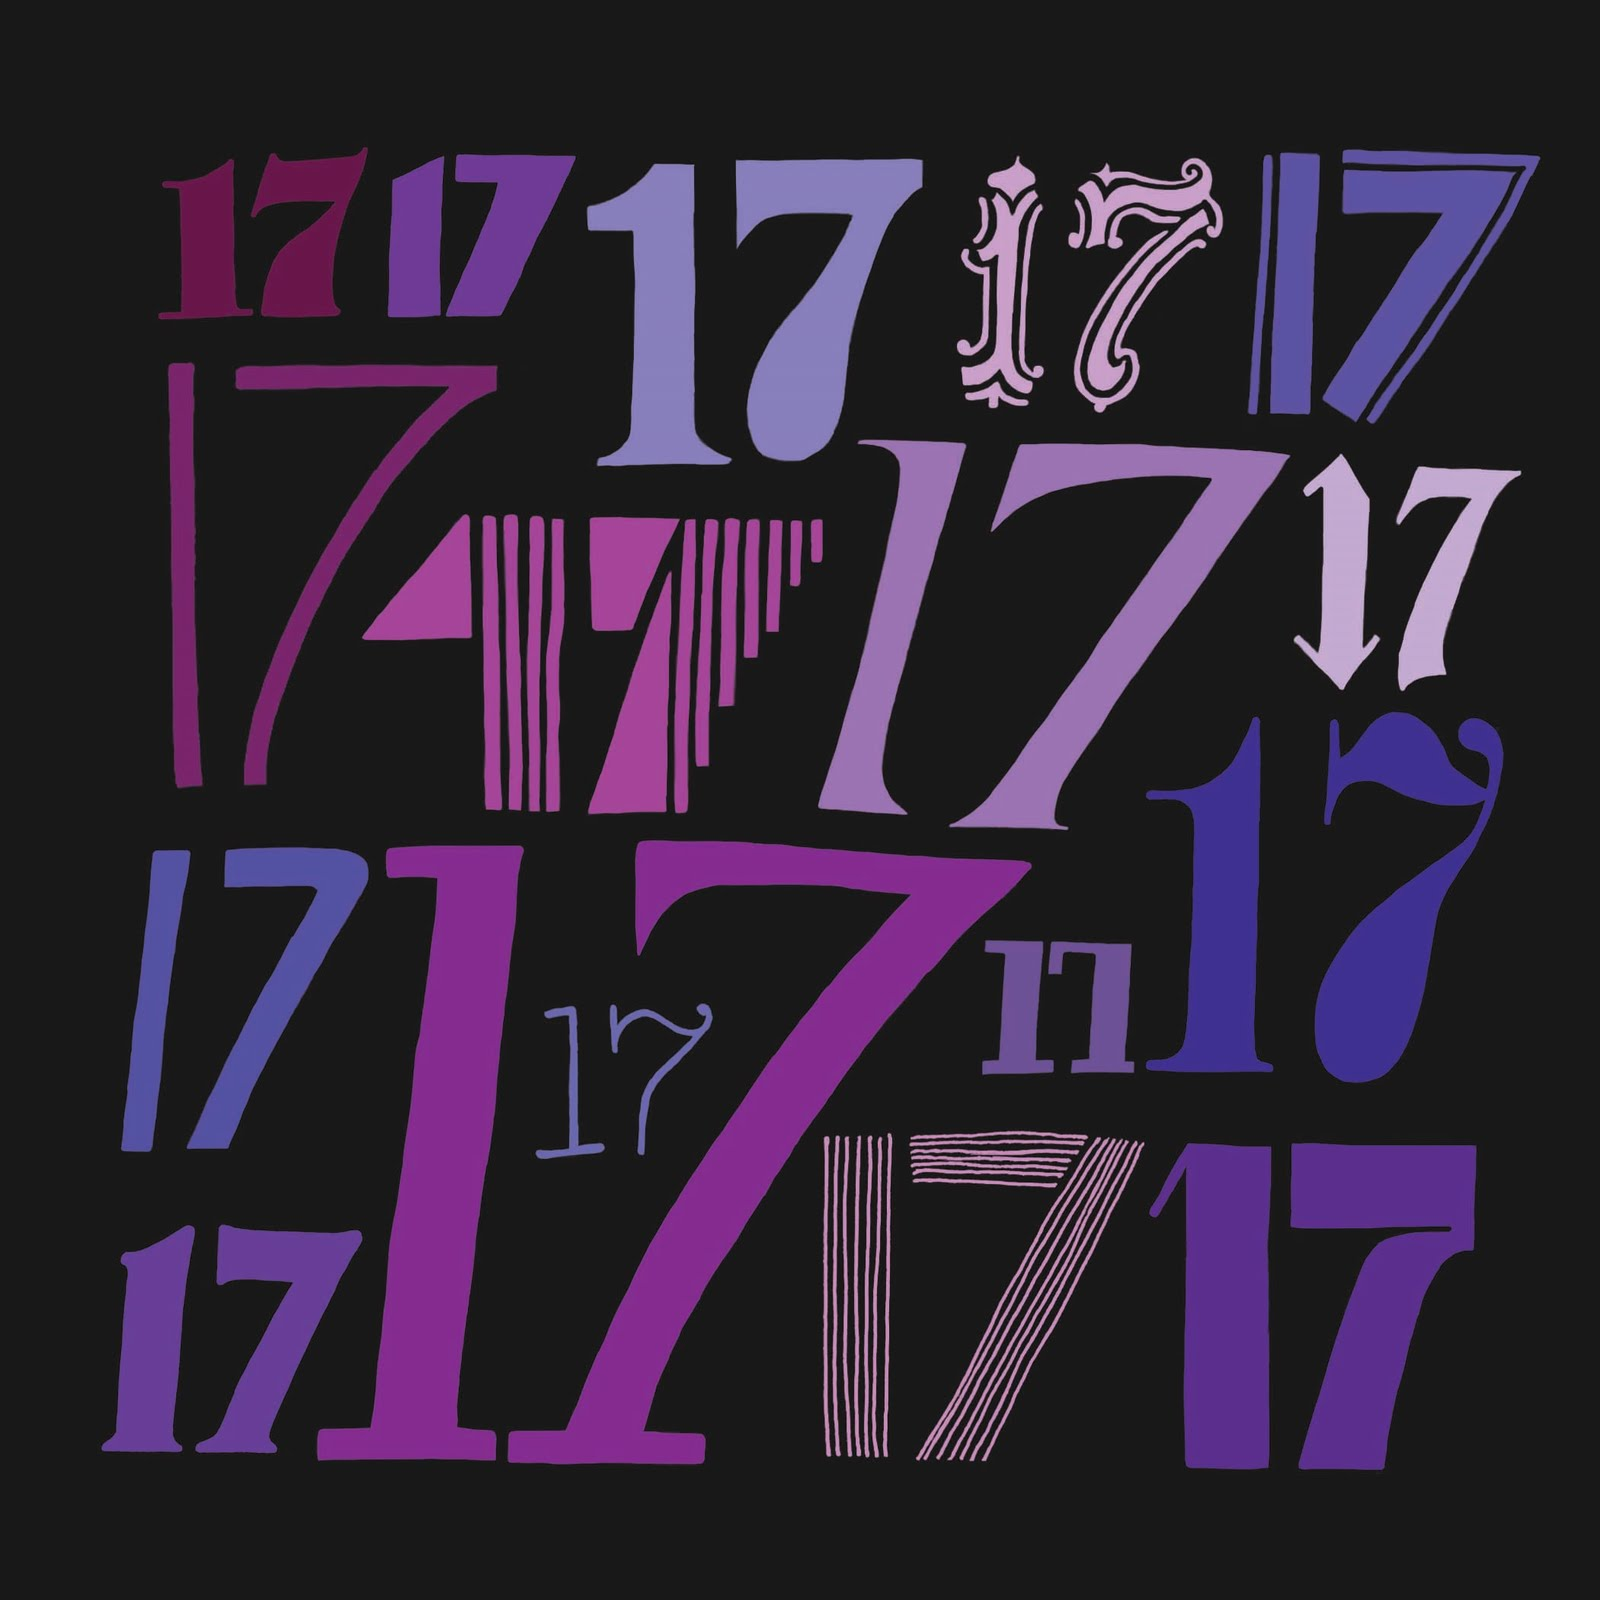 LK_number_17_color_purple